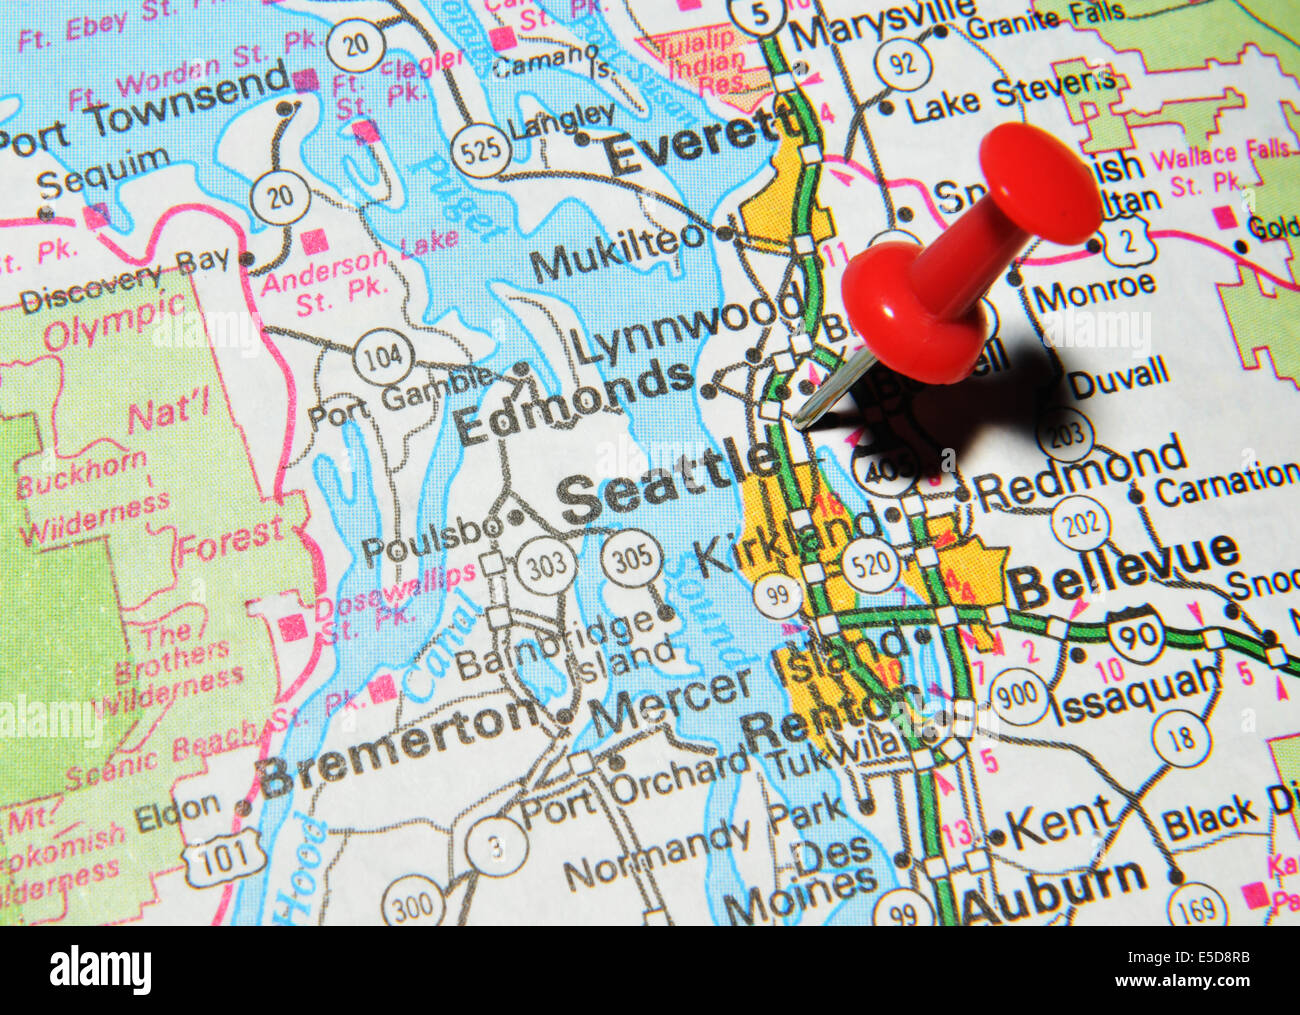 Seattle On US Map Stock Photo Royalty Free Image Alamy - Seattle on us map